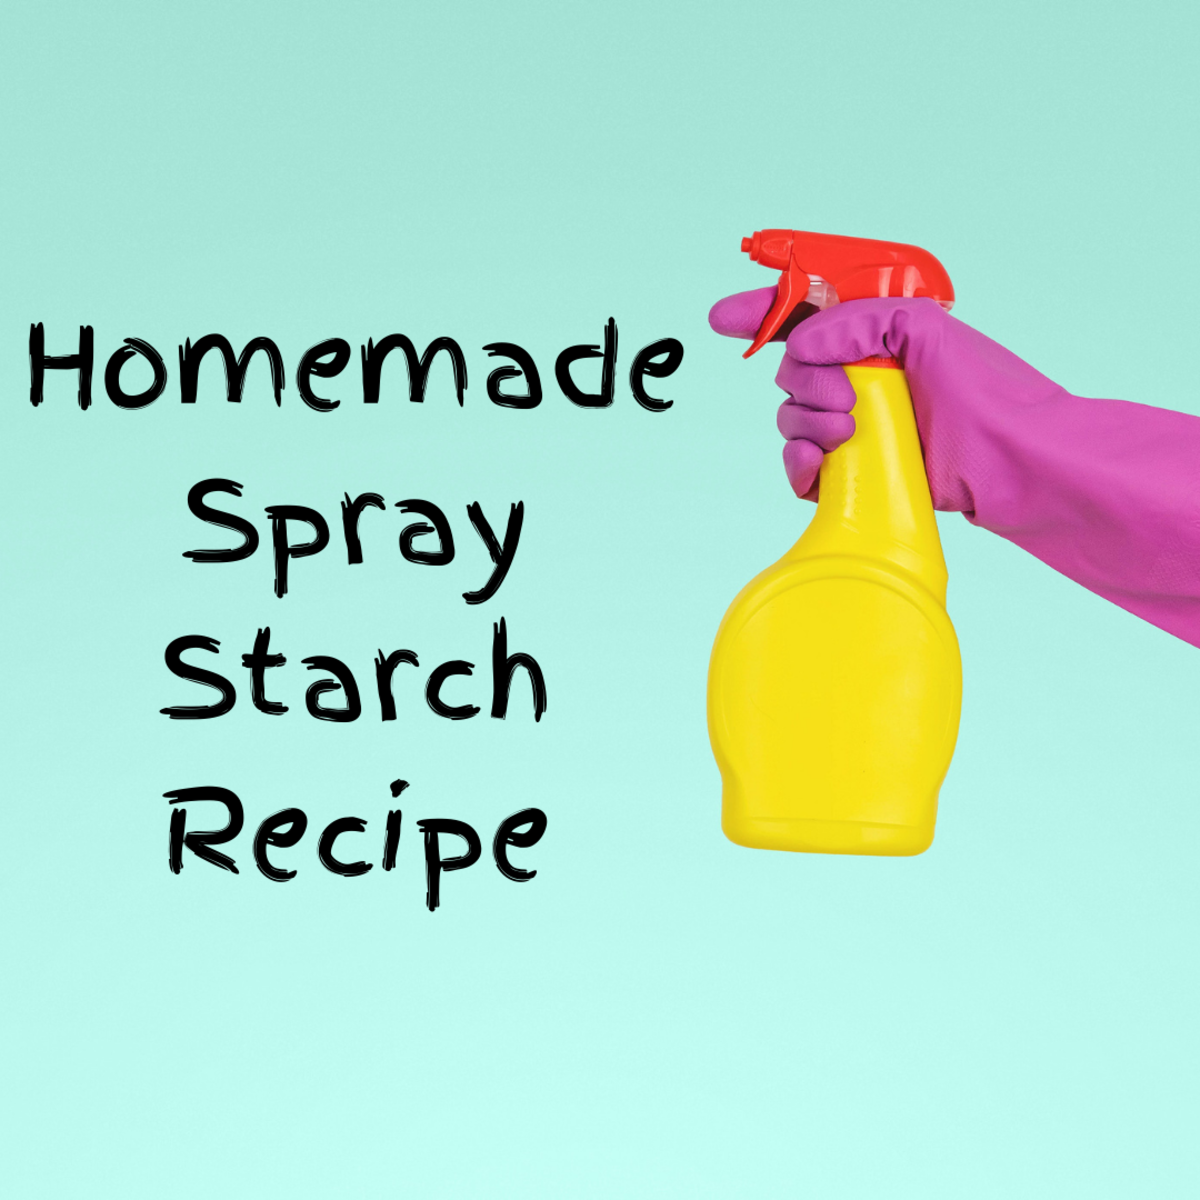 Learn how to easily make your own inexpensive spray starch!